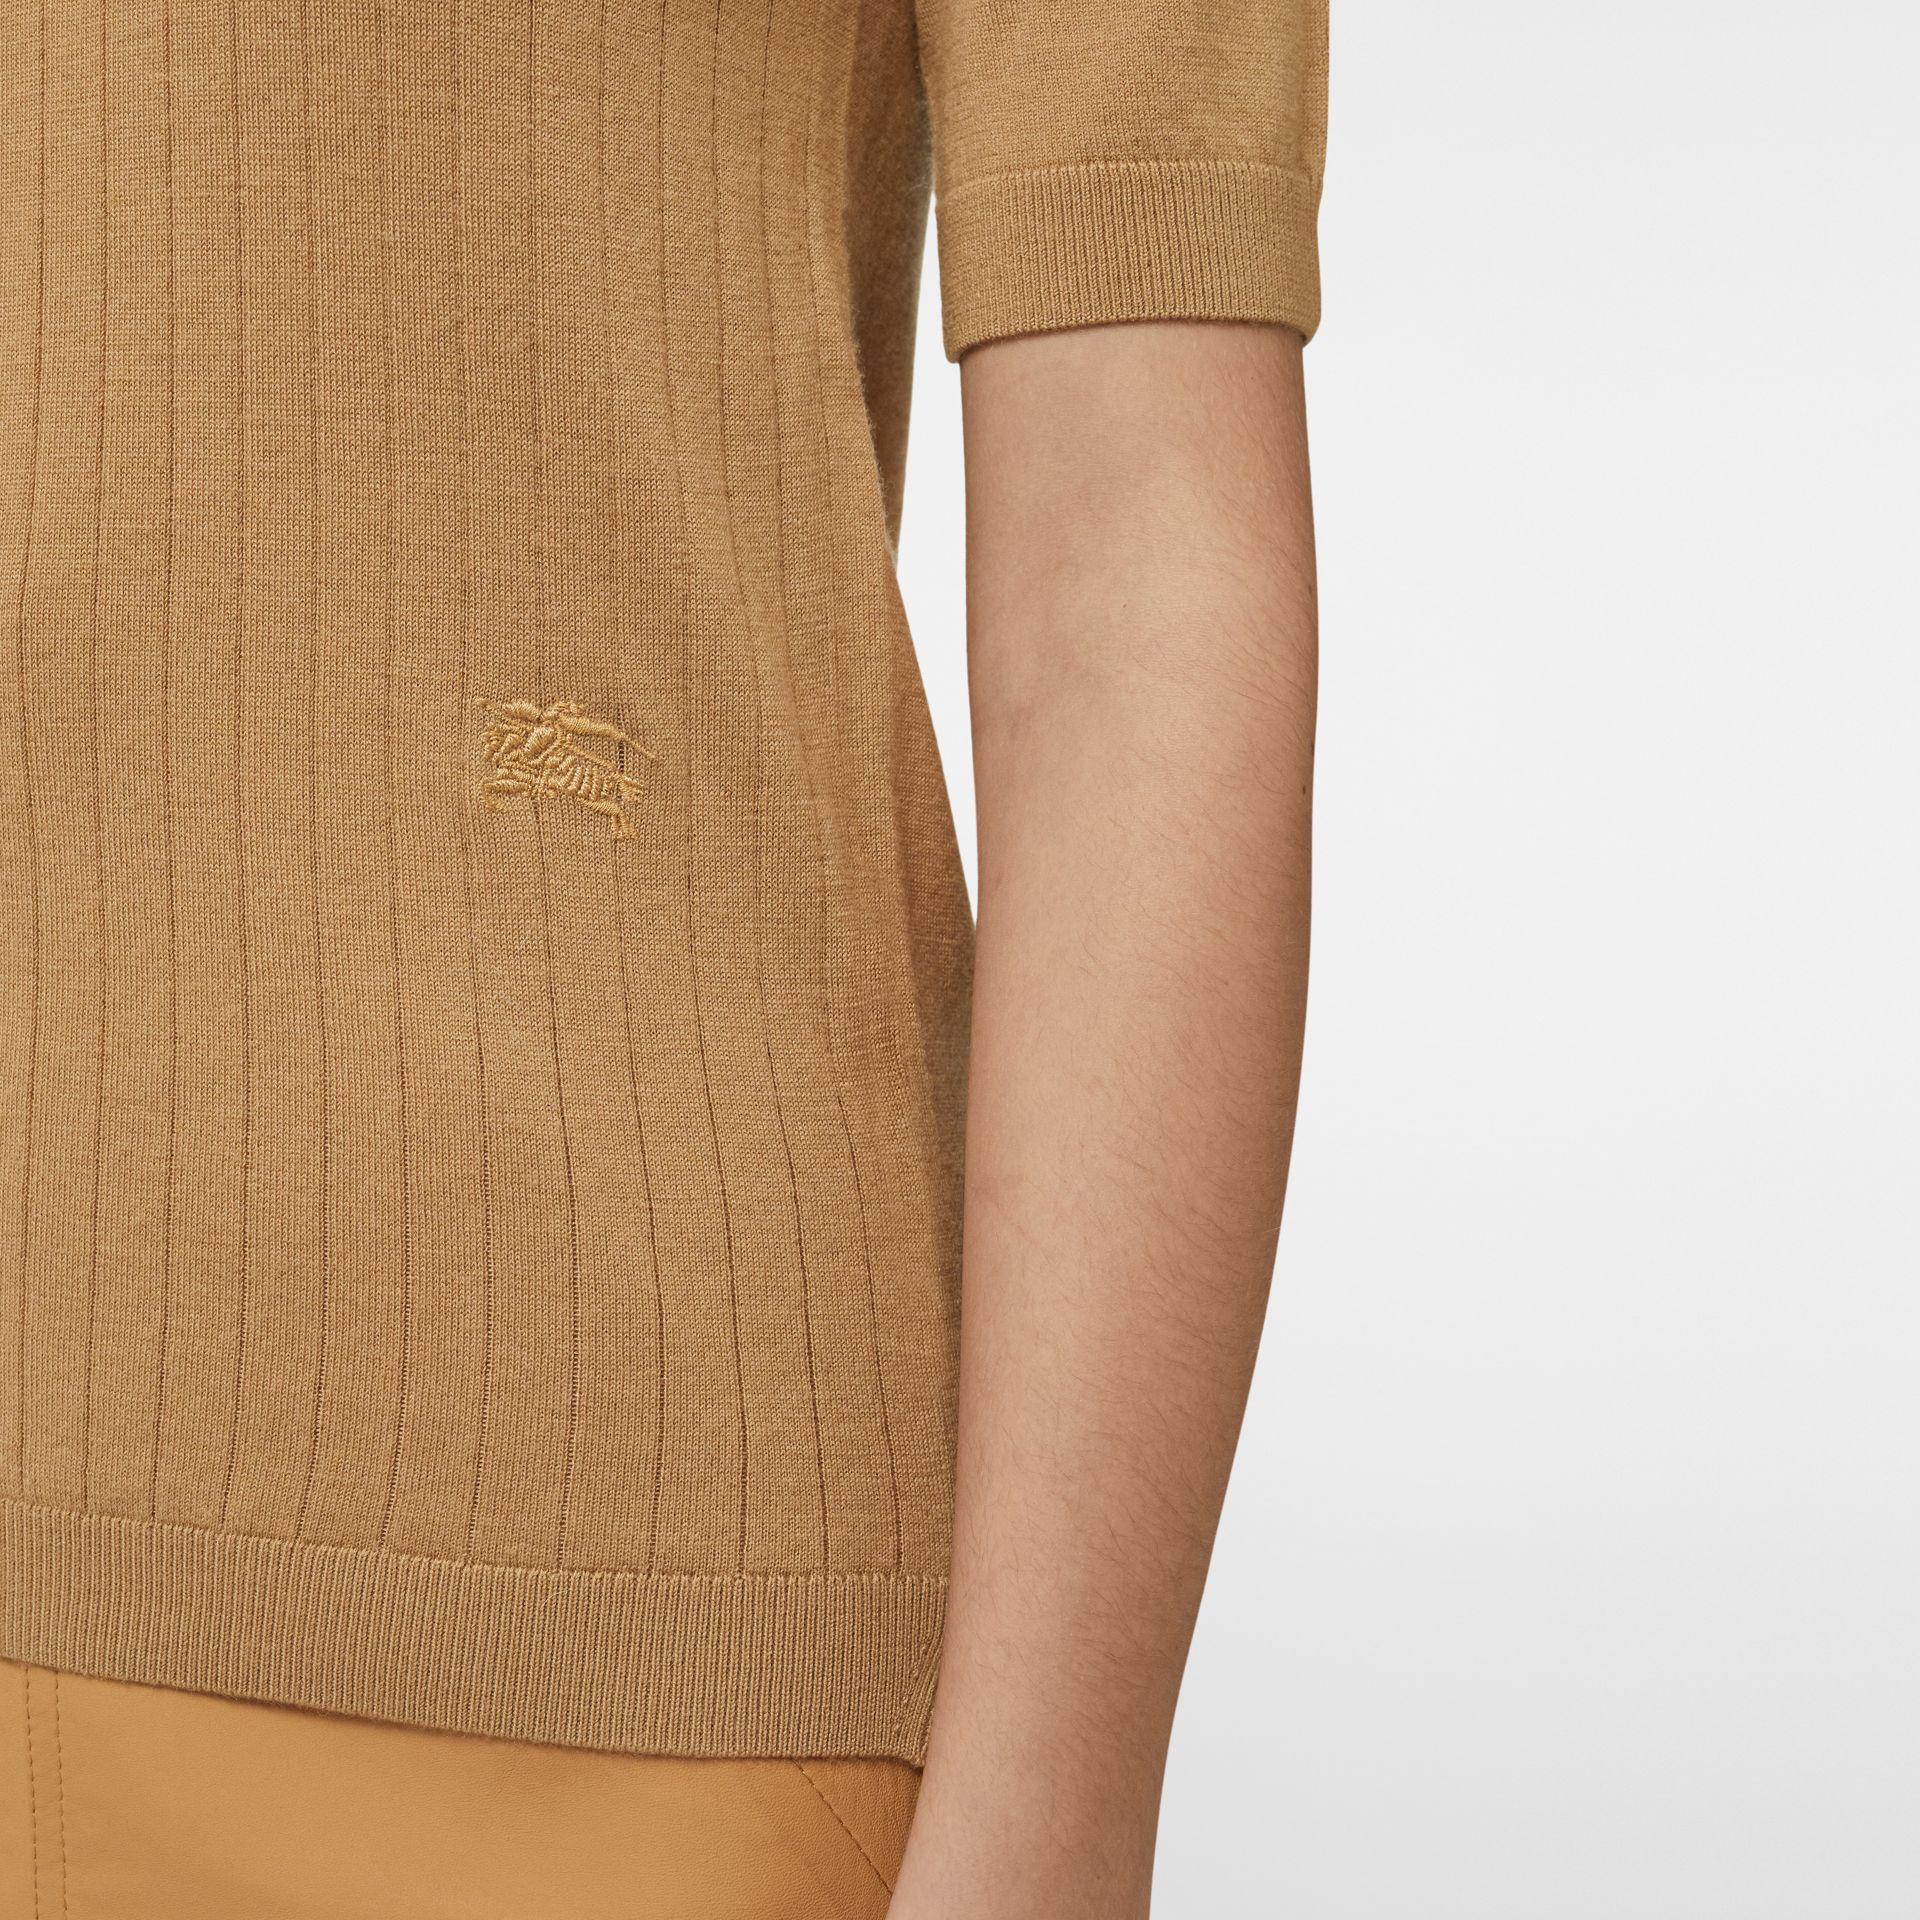 Short-sleeve Rib Knit Cashmere Sweater in Camel - Women | Burberry United States - gallery image 4